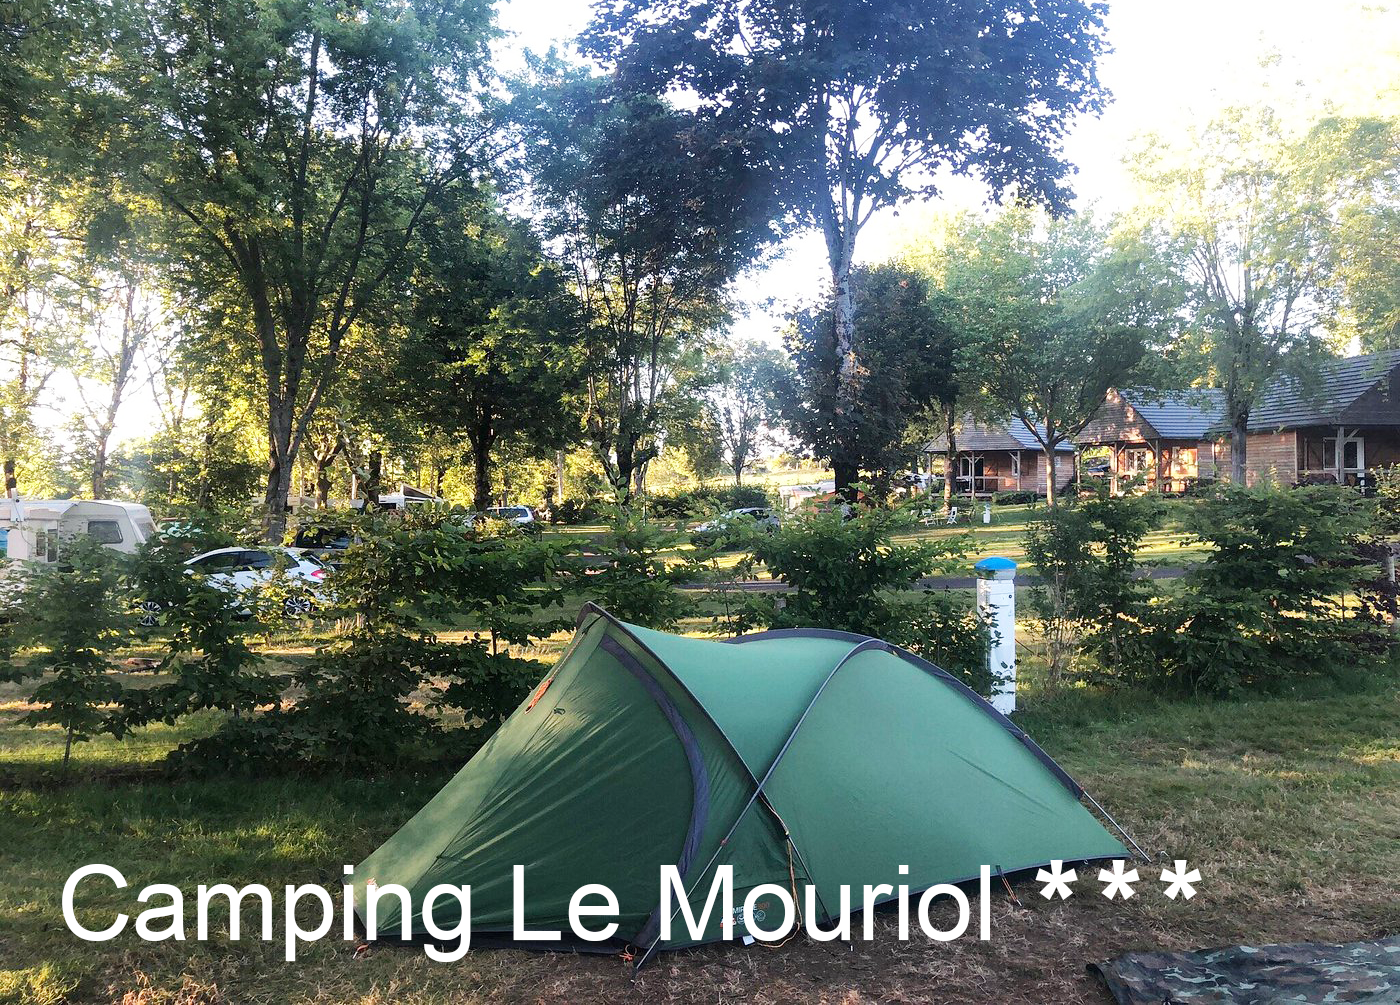 Camping *** Le Mouriol